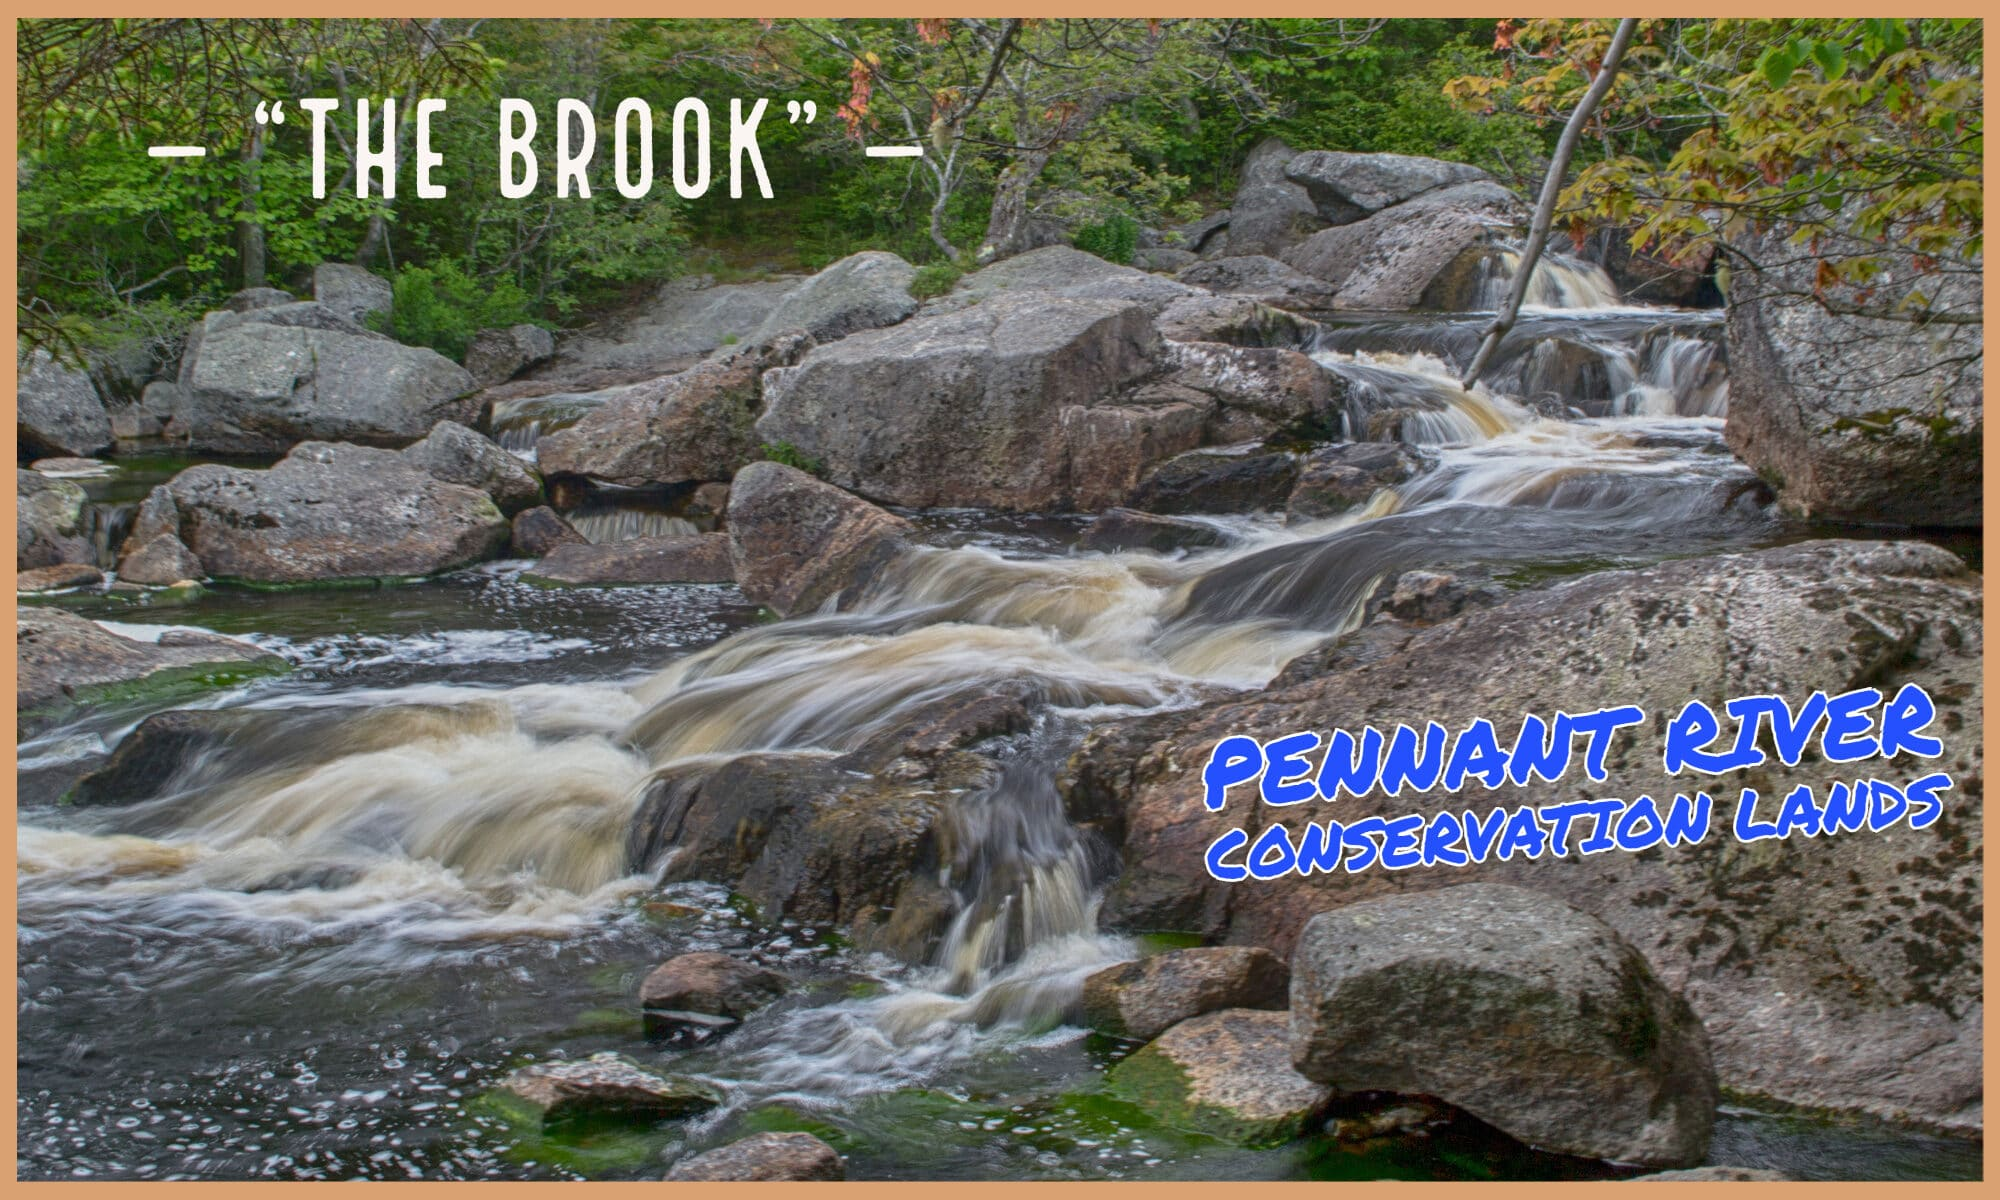 The Brook - Pennant River Conservation Lands in Halifax, NS